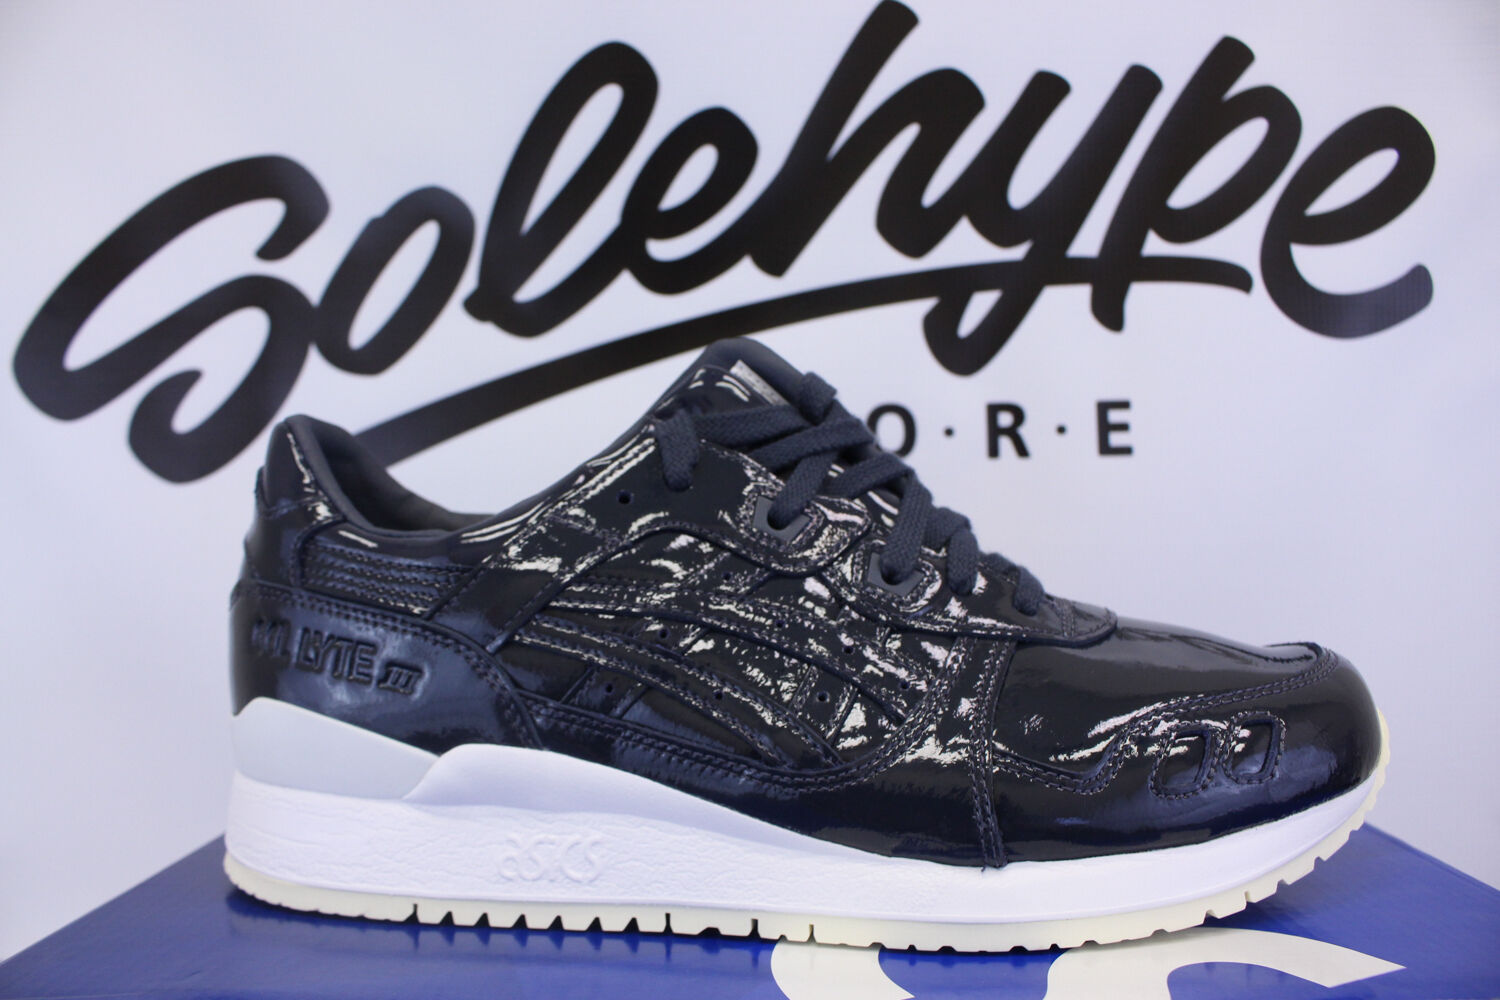 ASICS GEL LYTE III 3 PATENT LEATHER INDIA INK H7H1L 5858 SZ 8.5